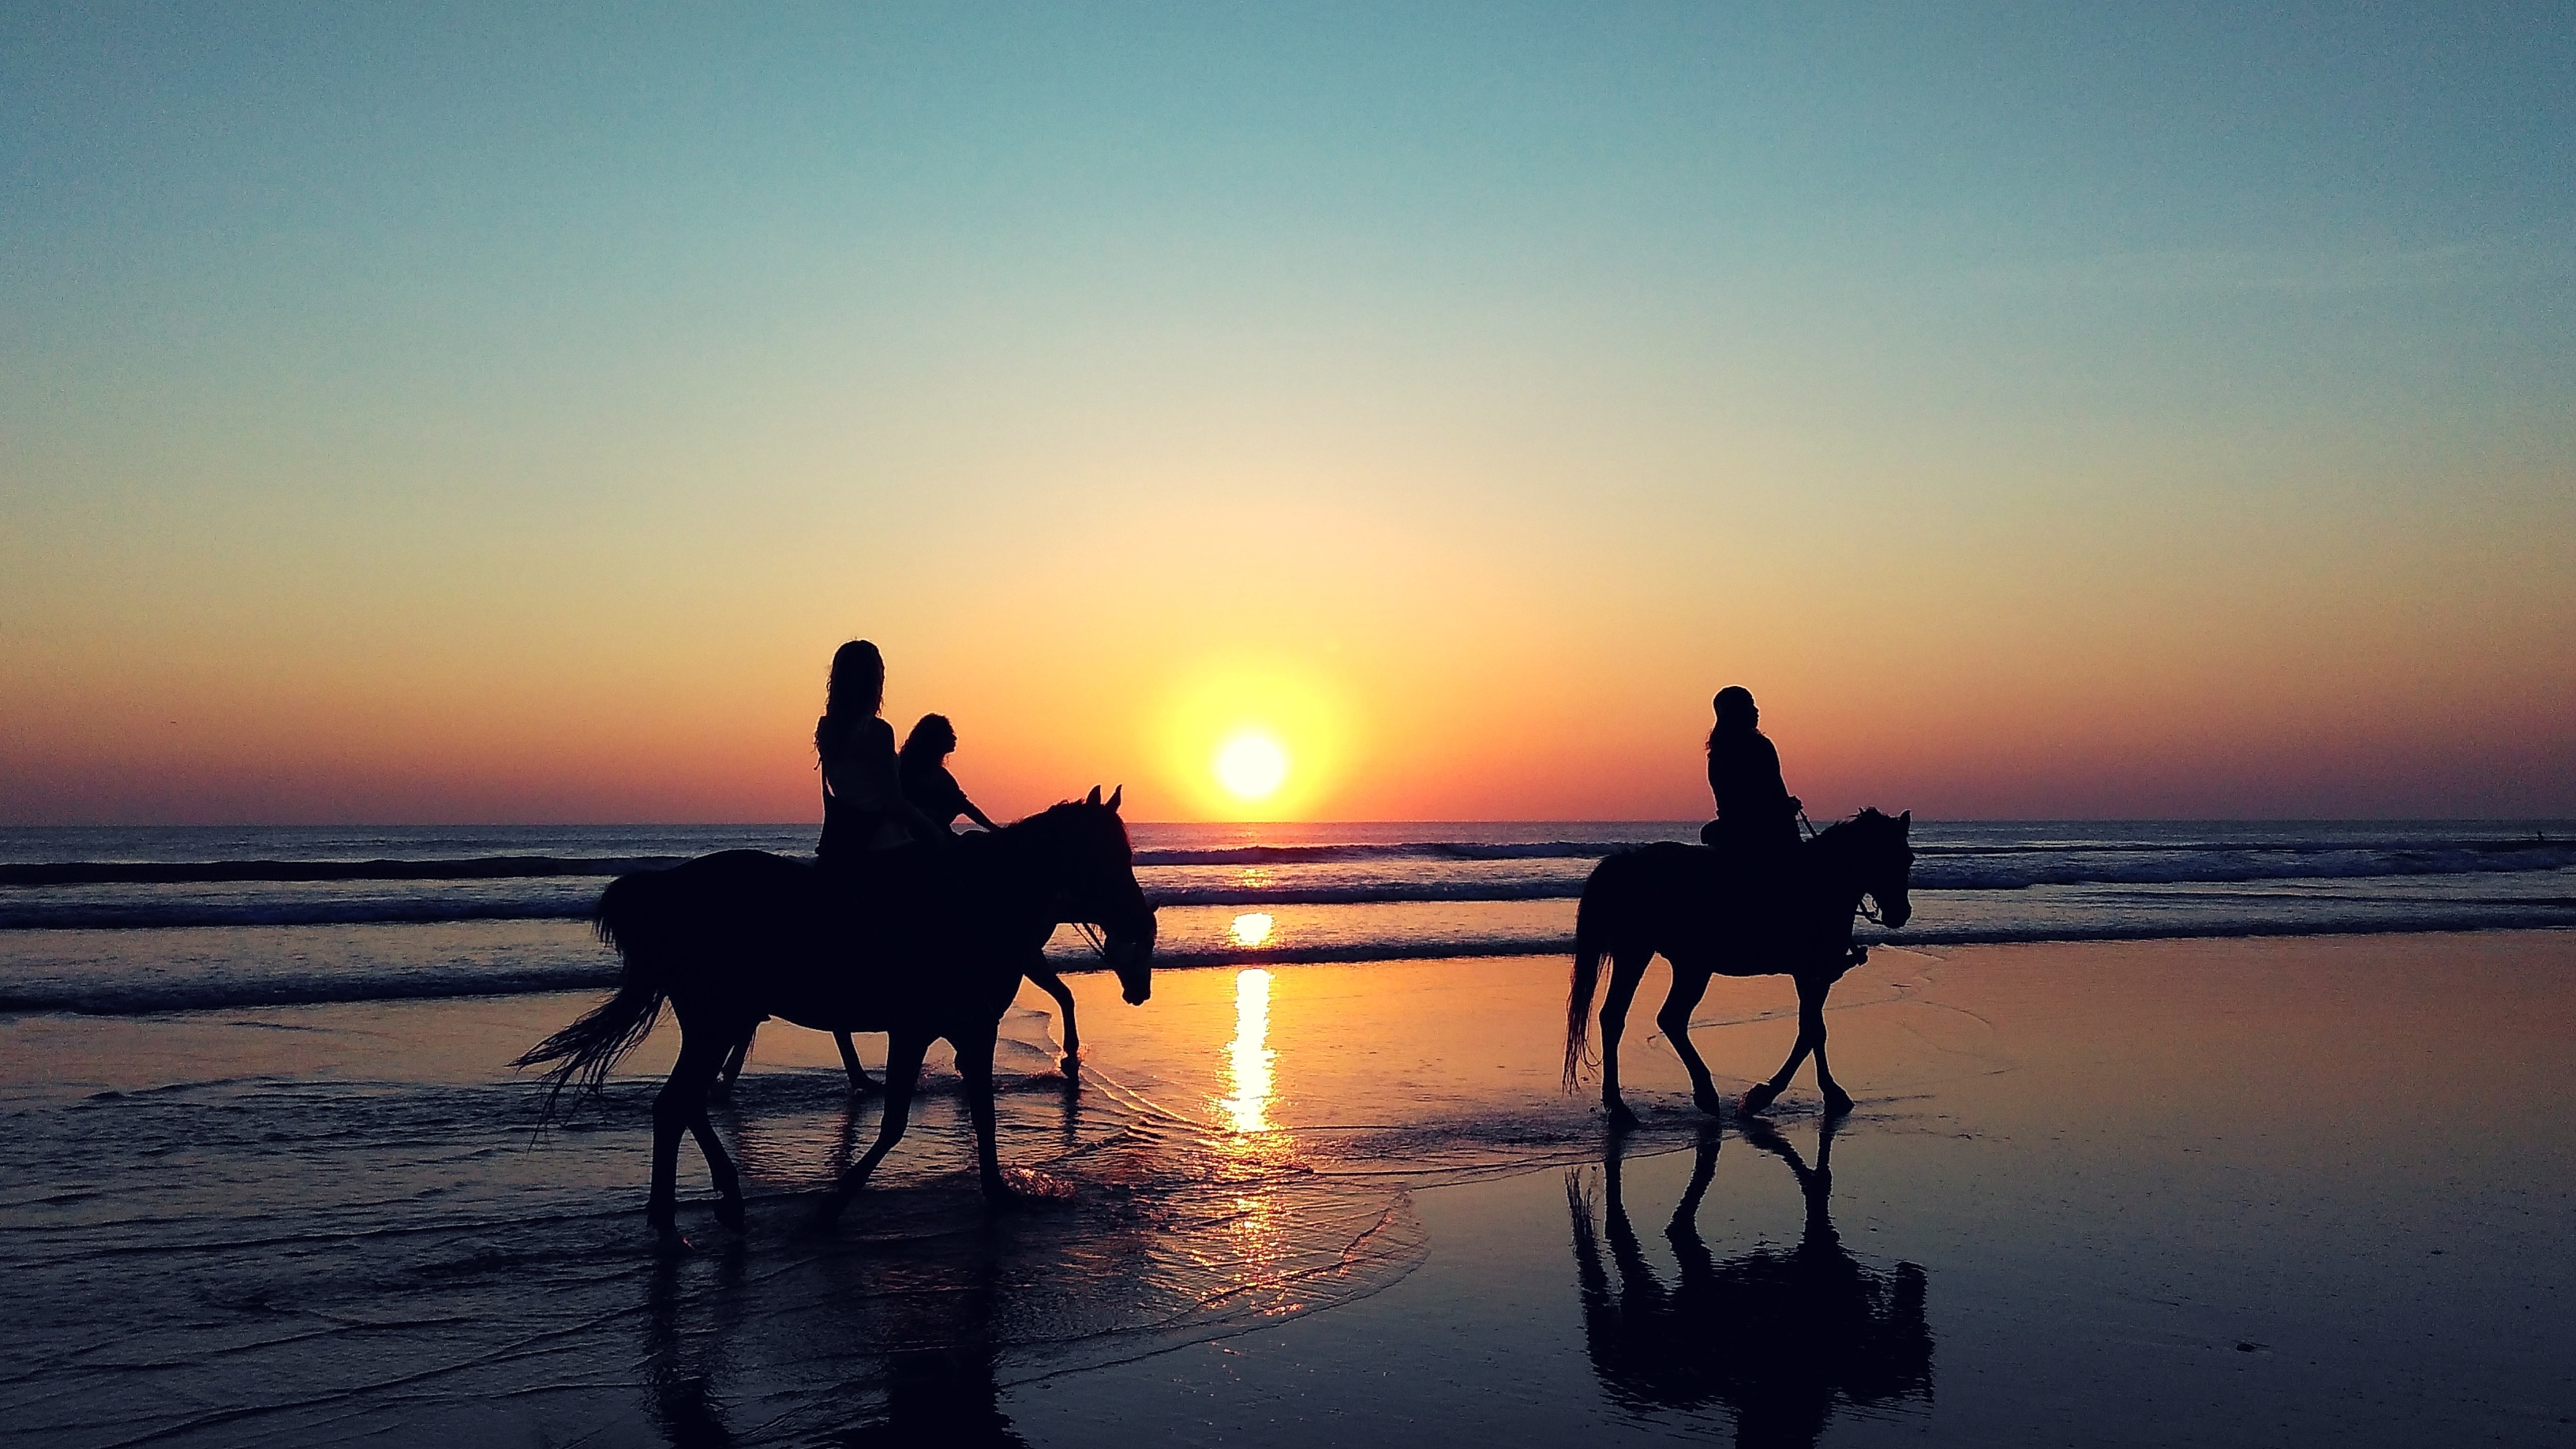 horse_riding_is_an_experience_for_your_hotel_to_offer_guests.jpg